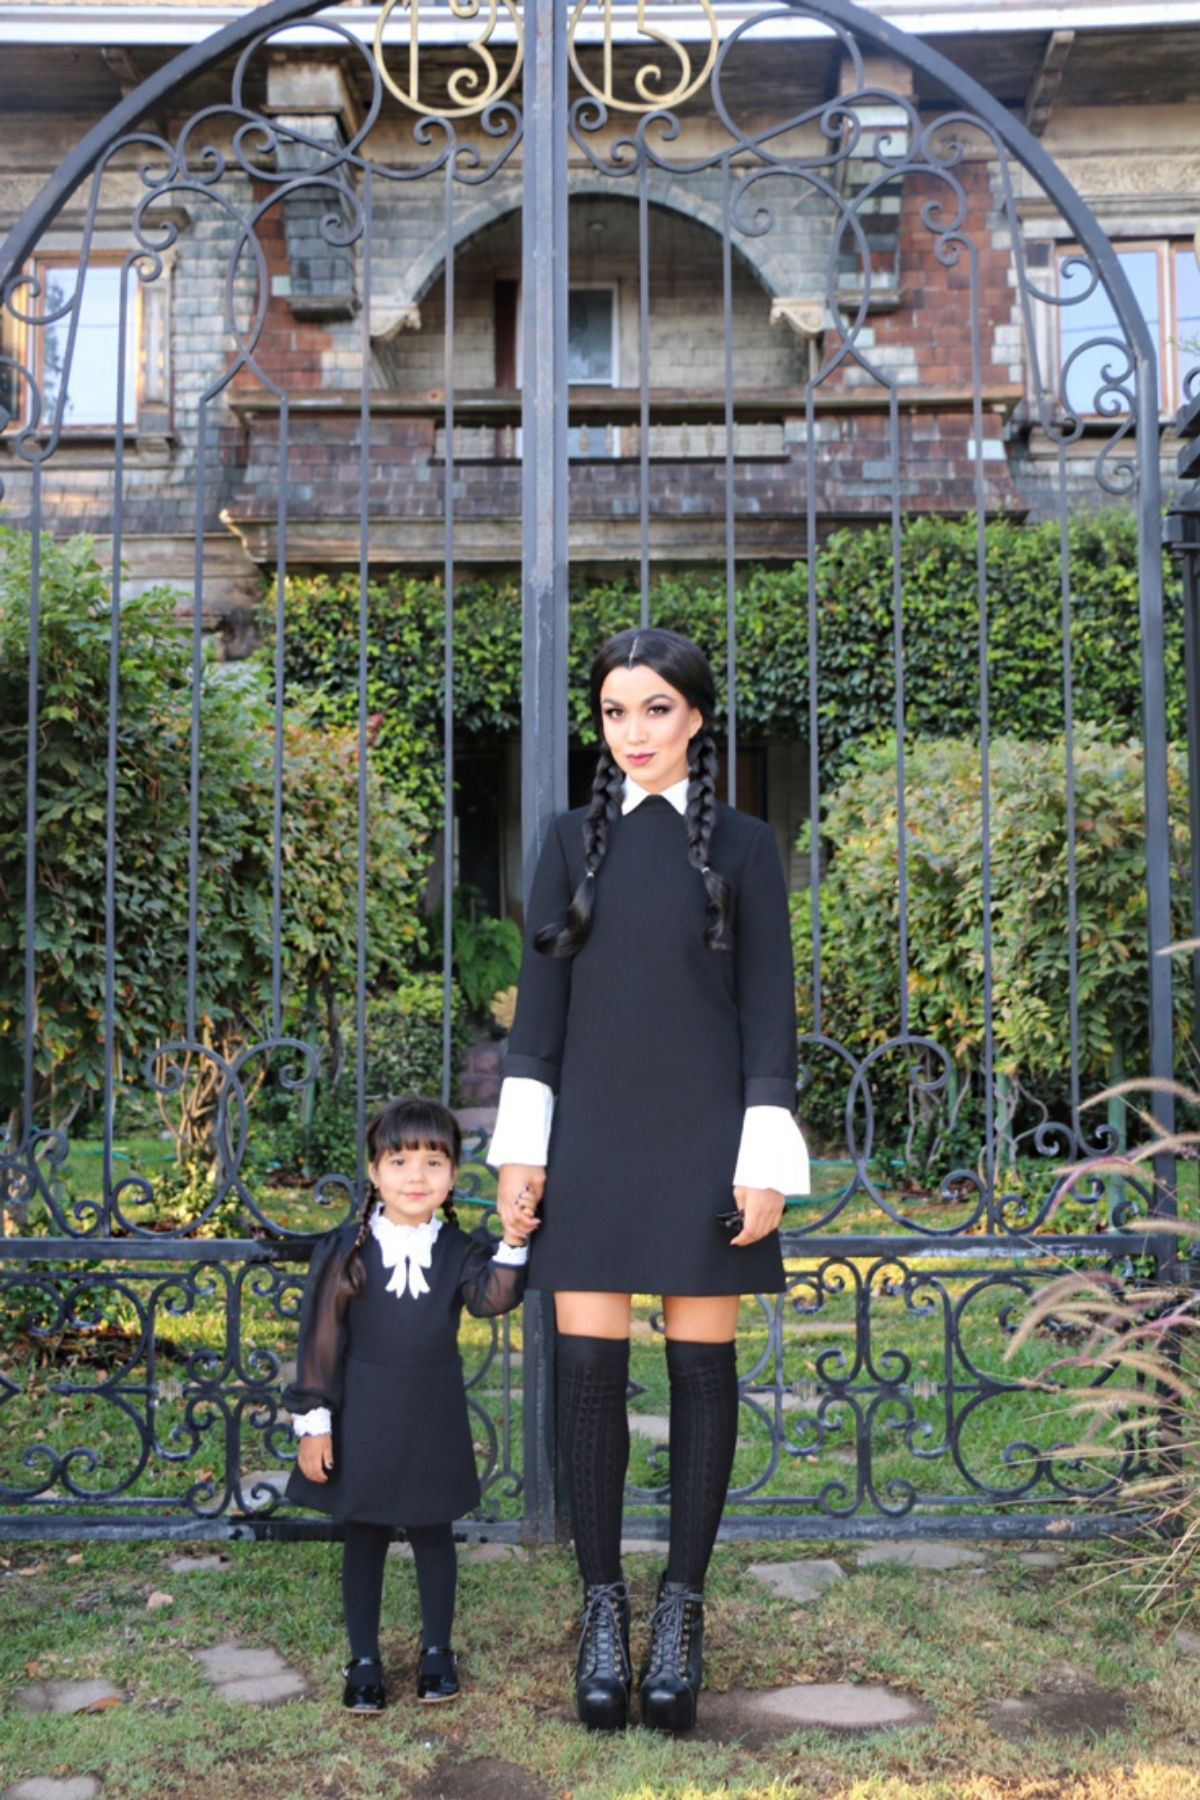 mom and daughter both dressed up as Wednesday Addams